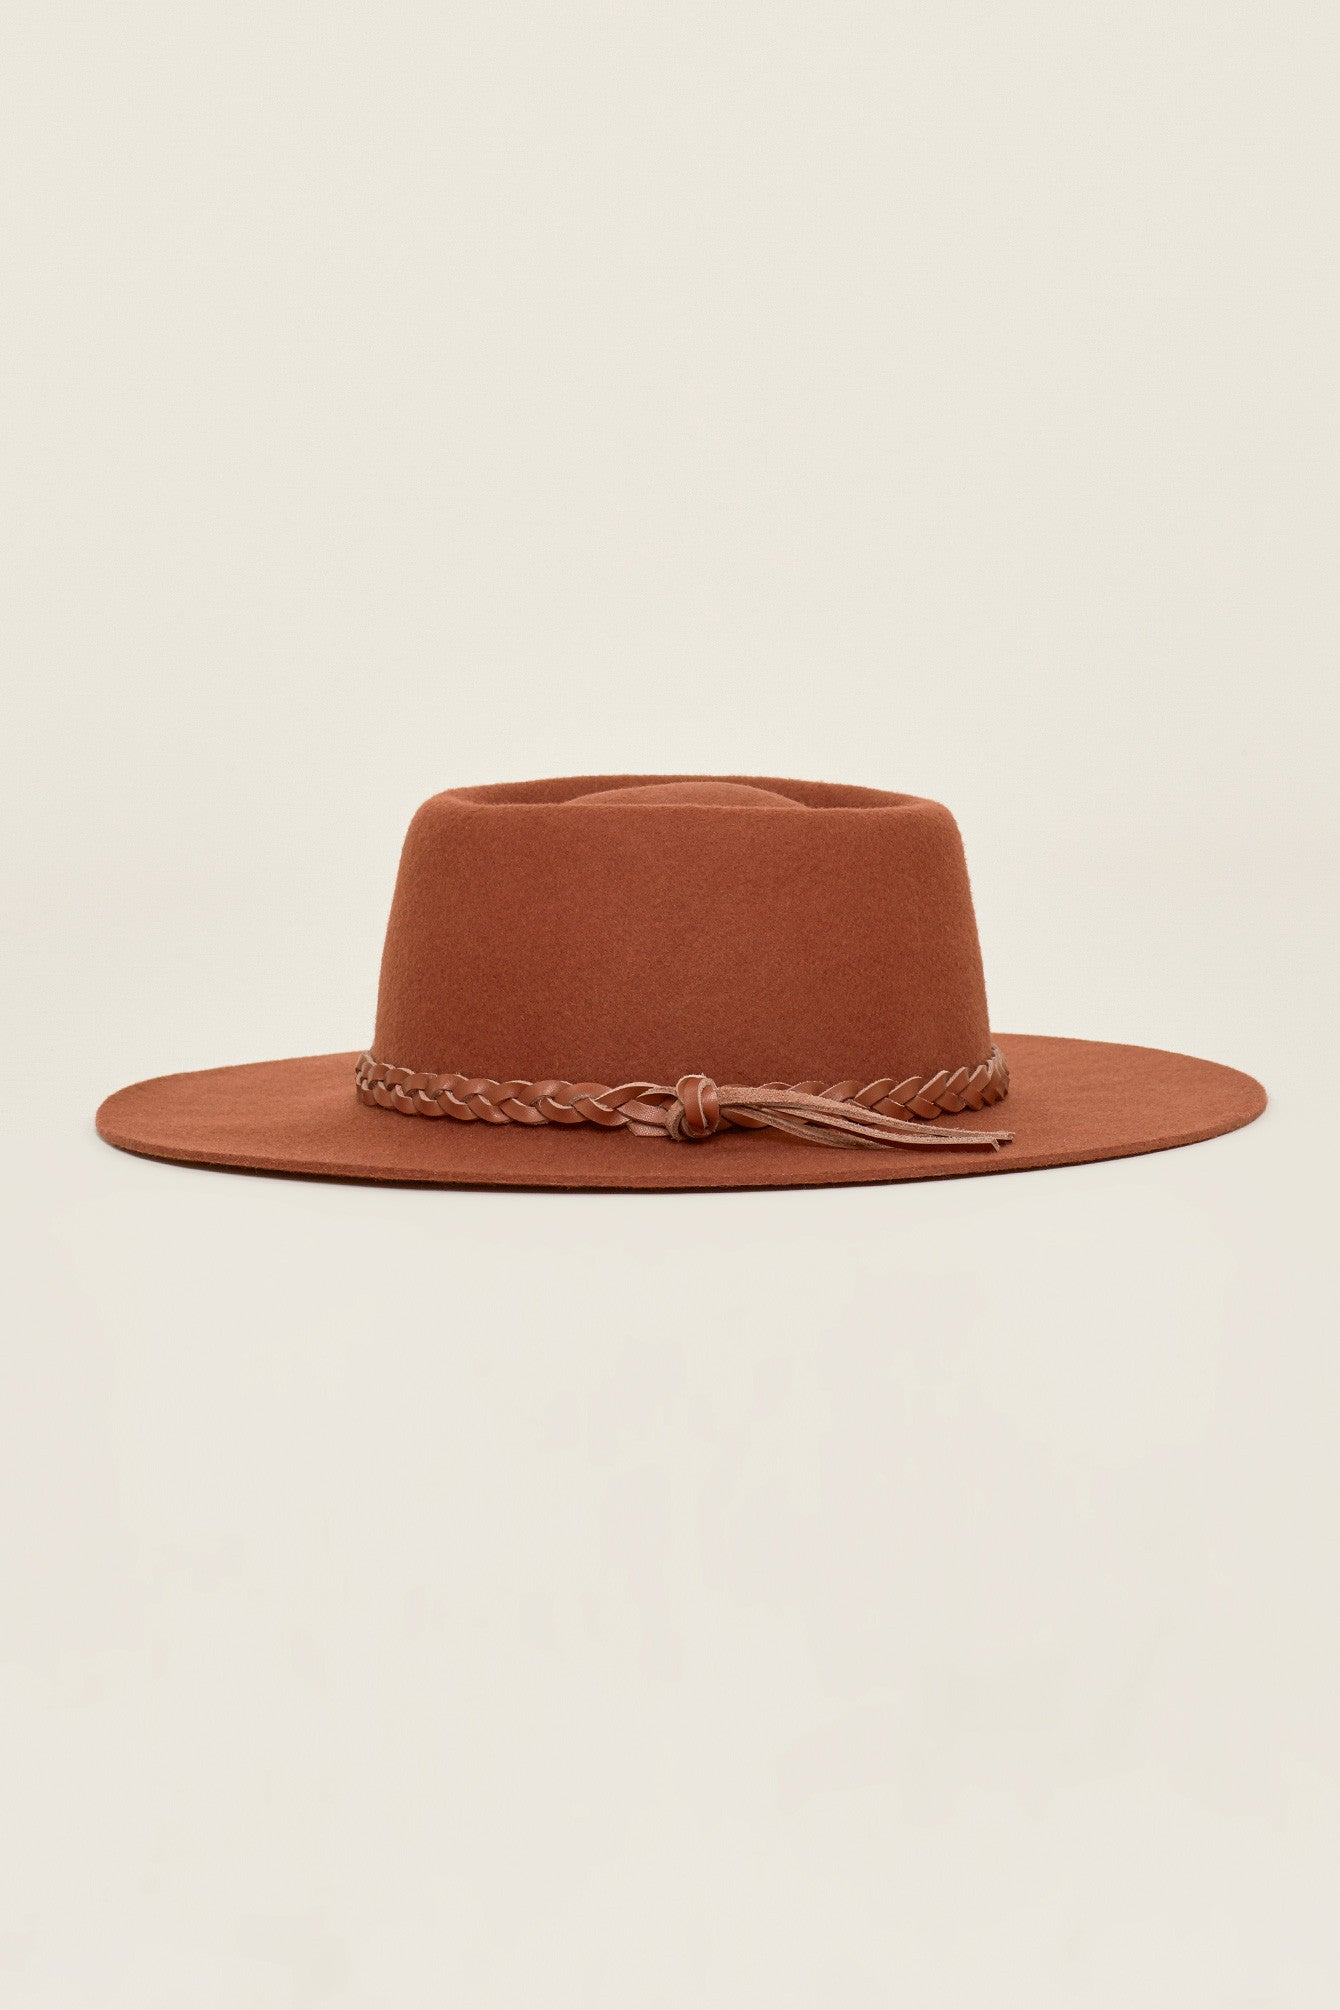 mode, Bordeaux hat